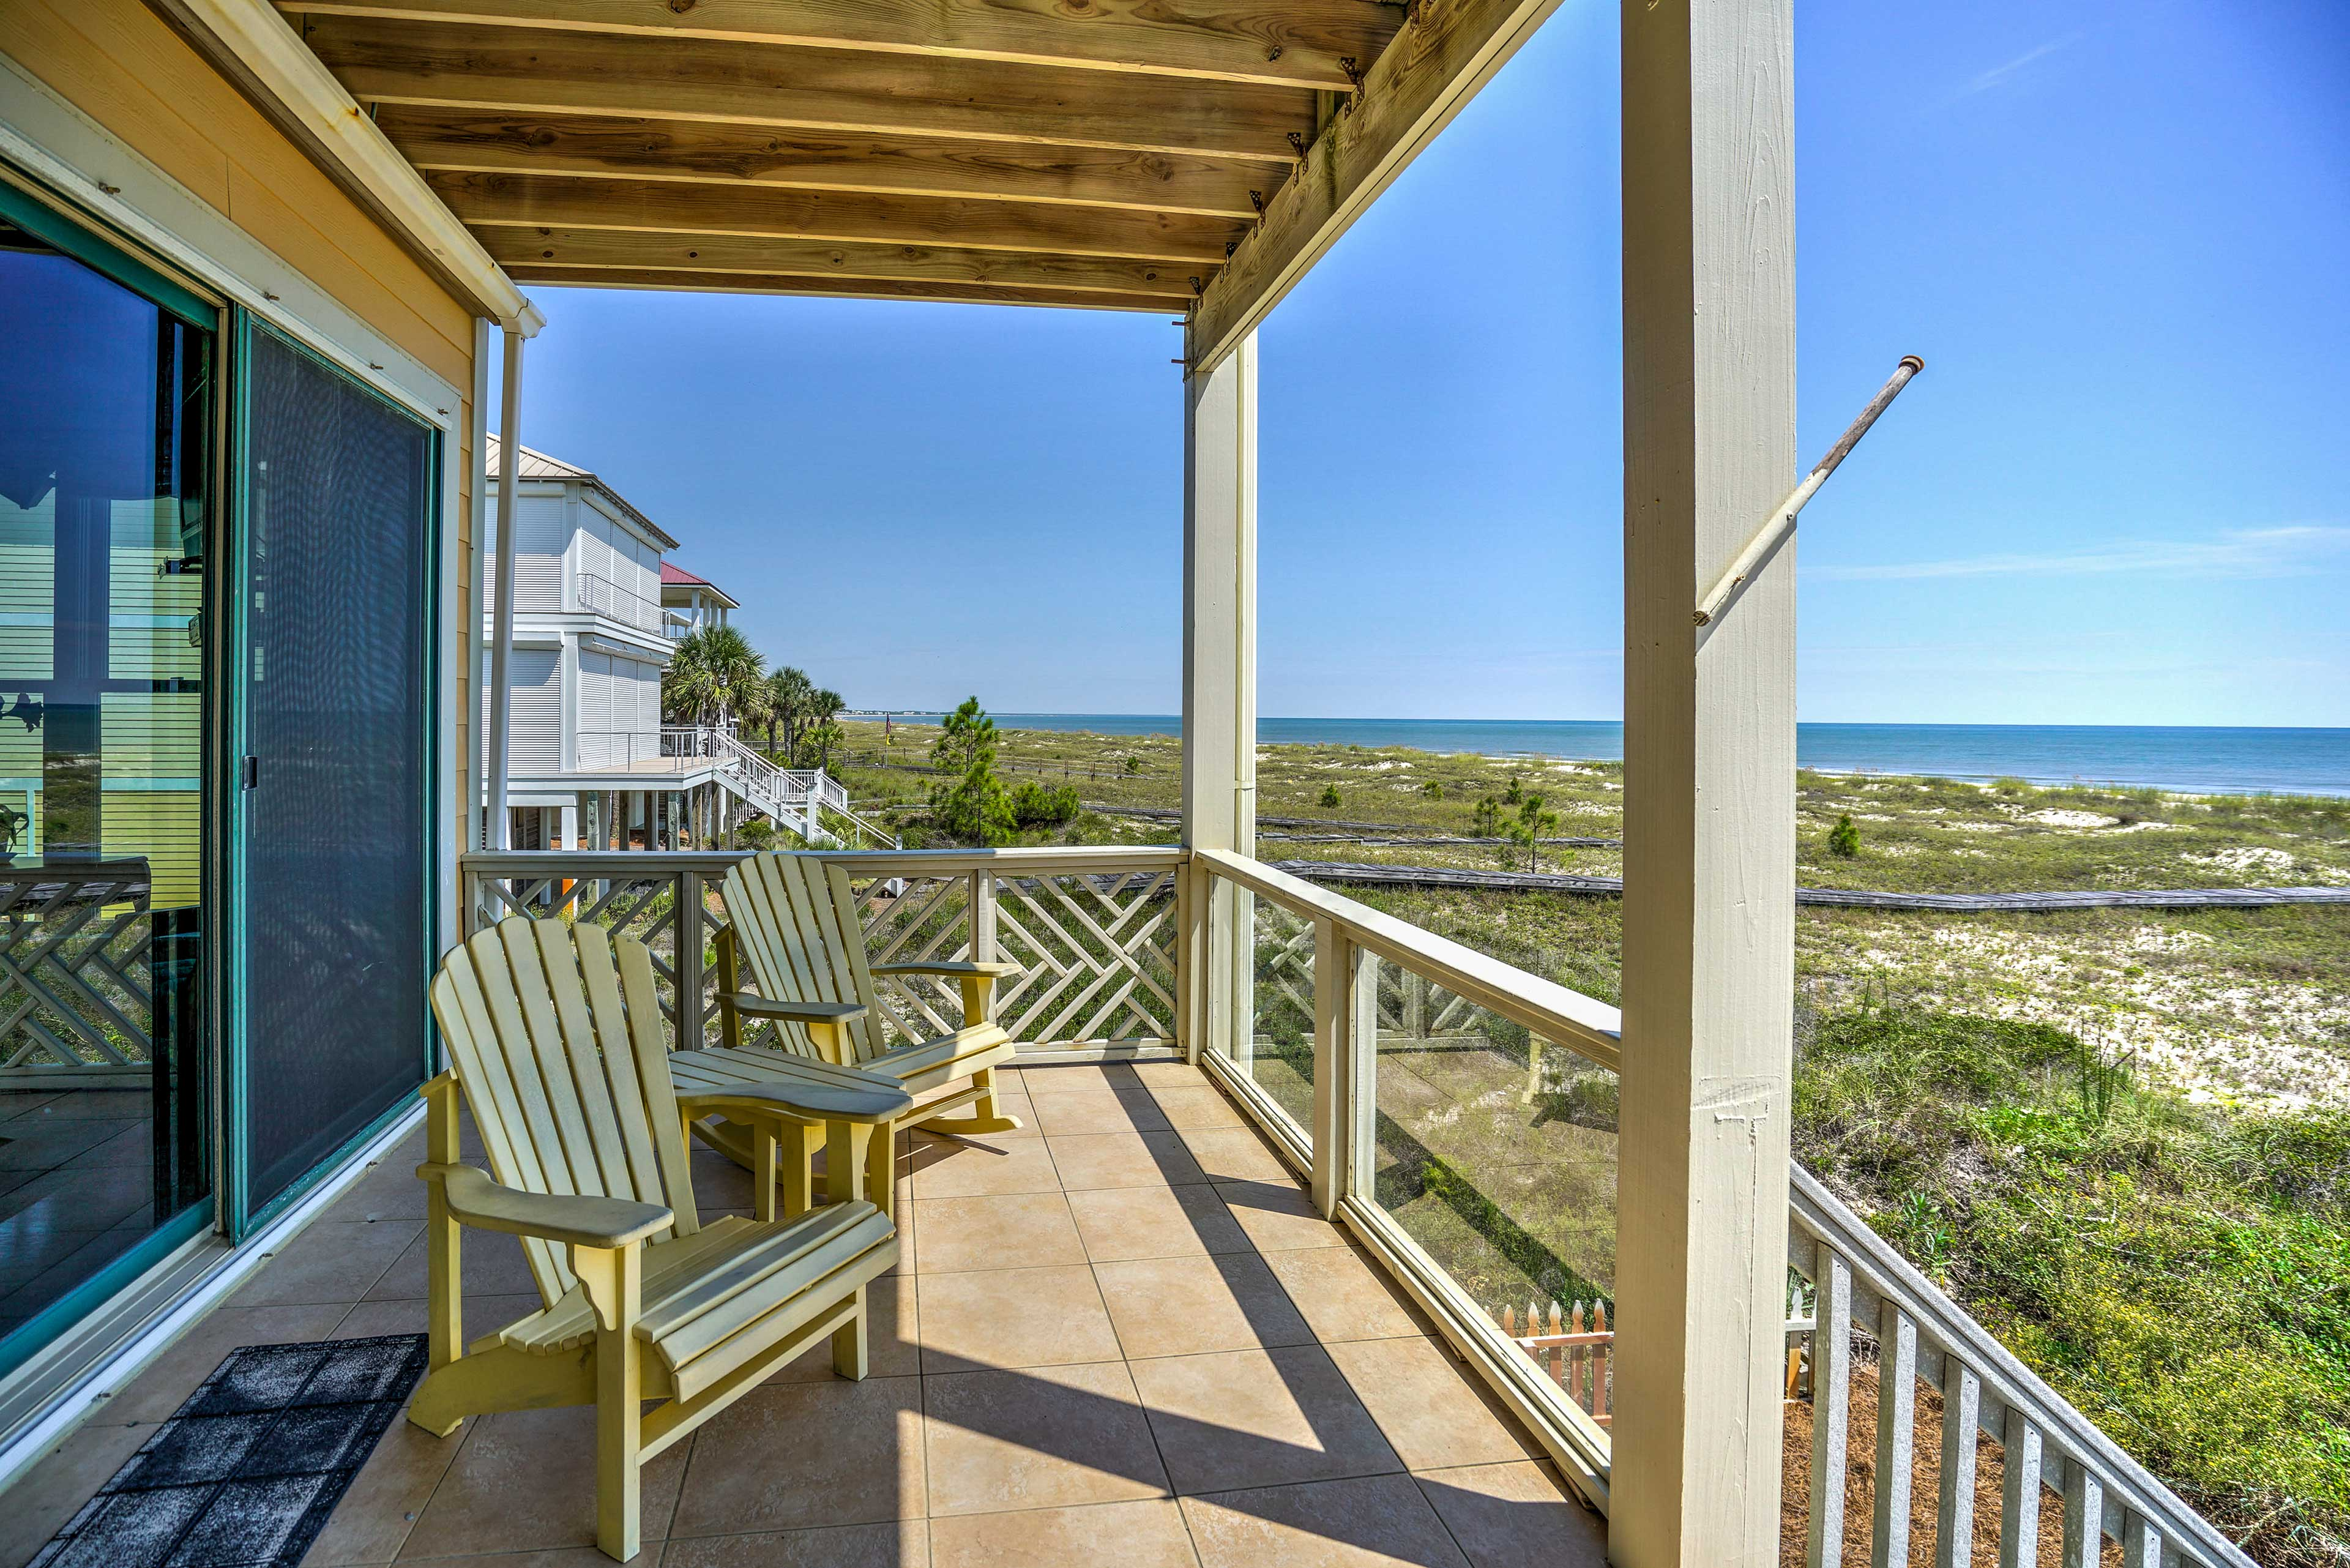 Sip your morning coffee while admiring the beach views from one of 4 balconies.